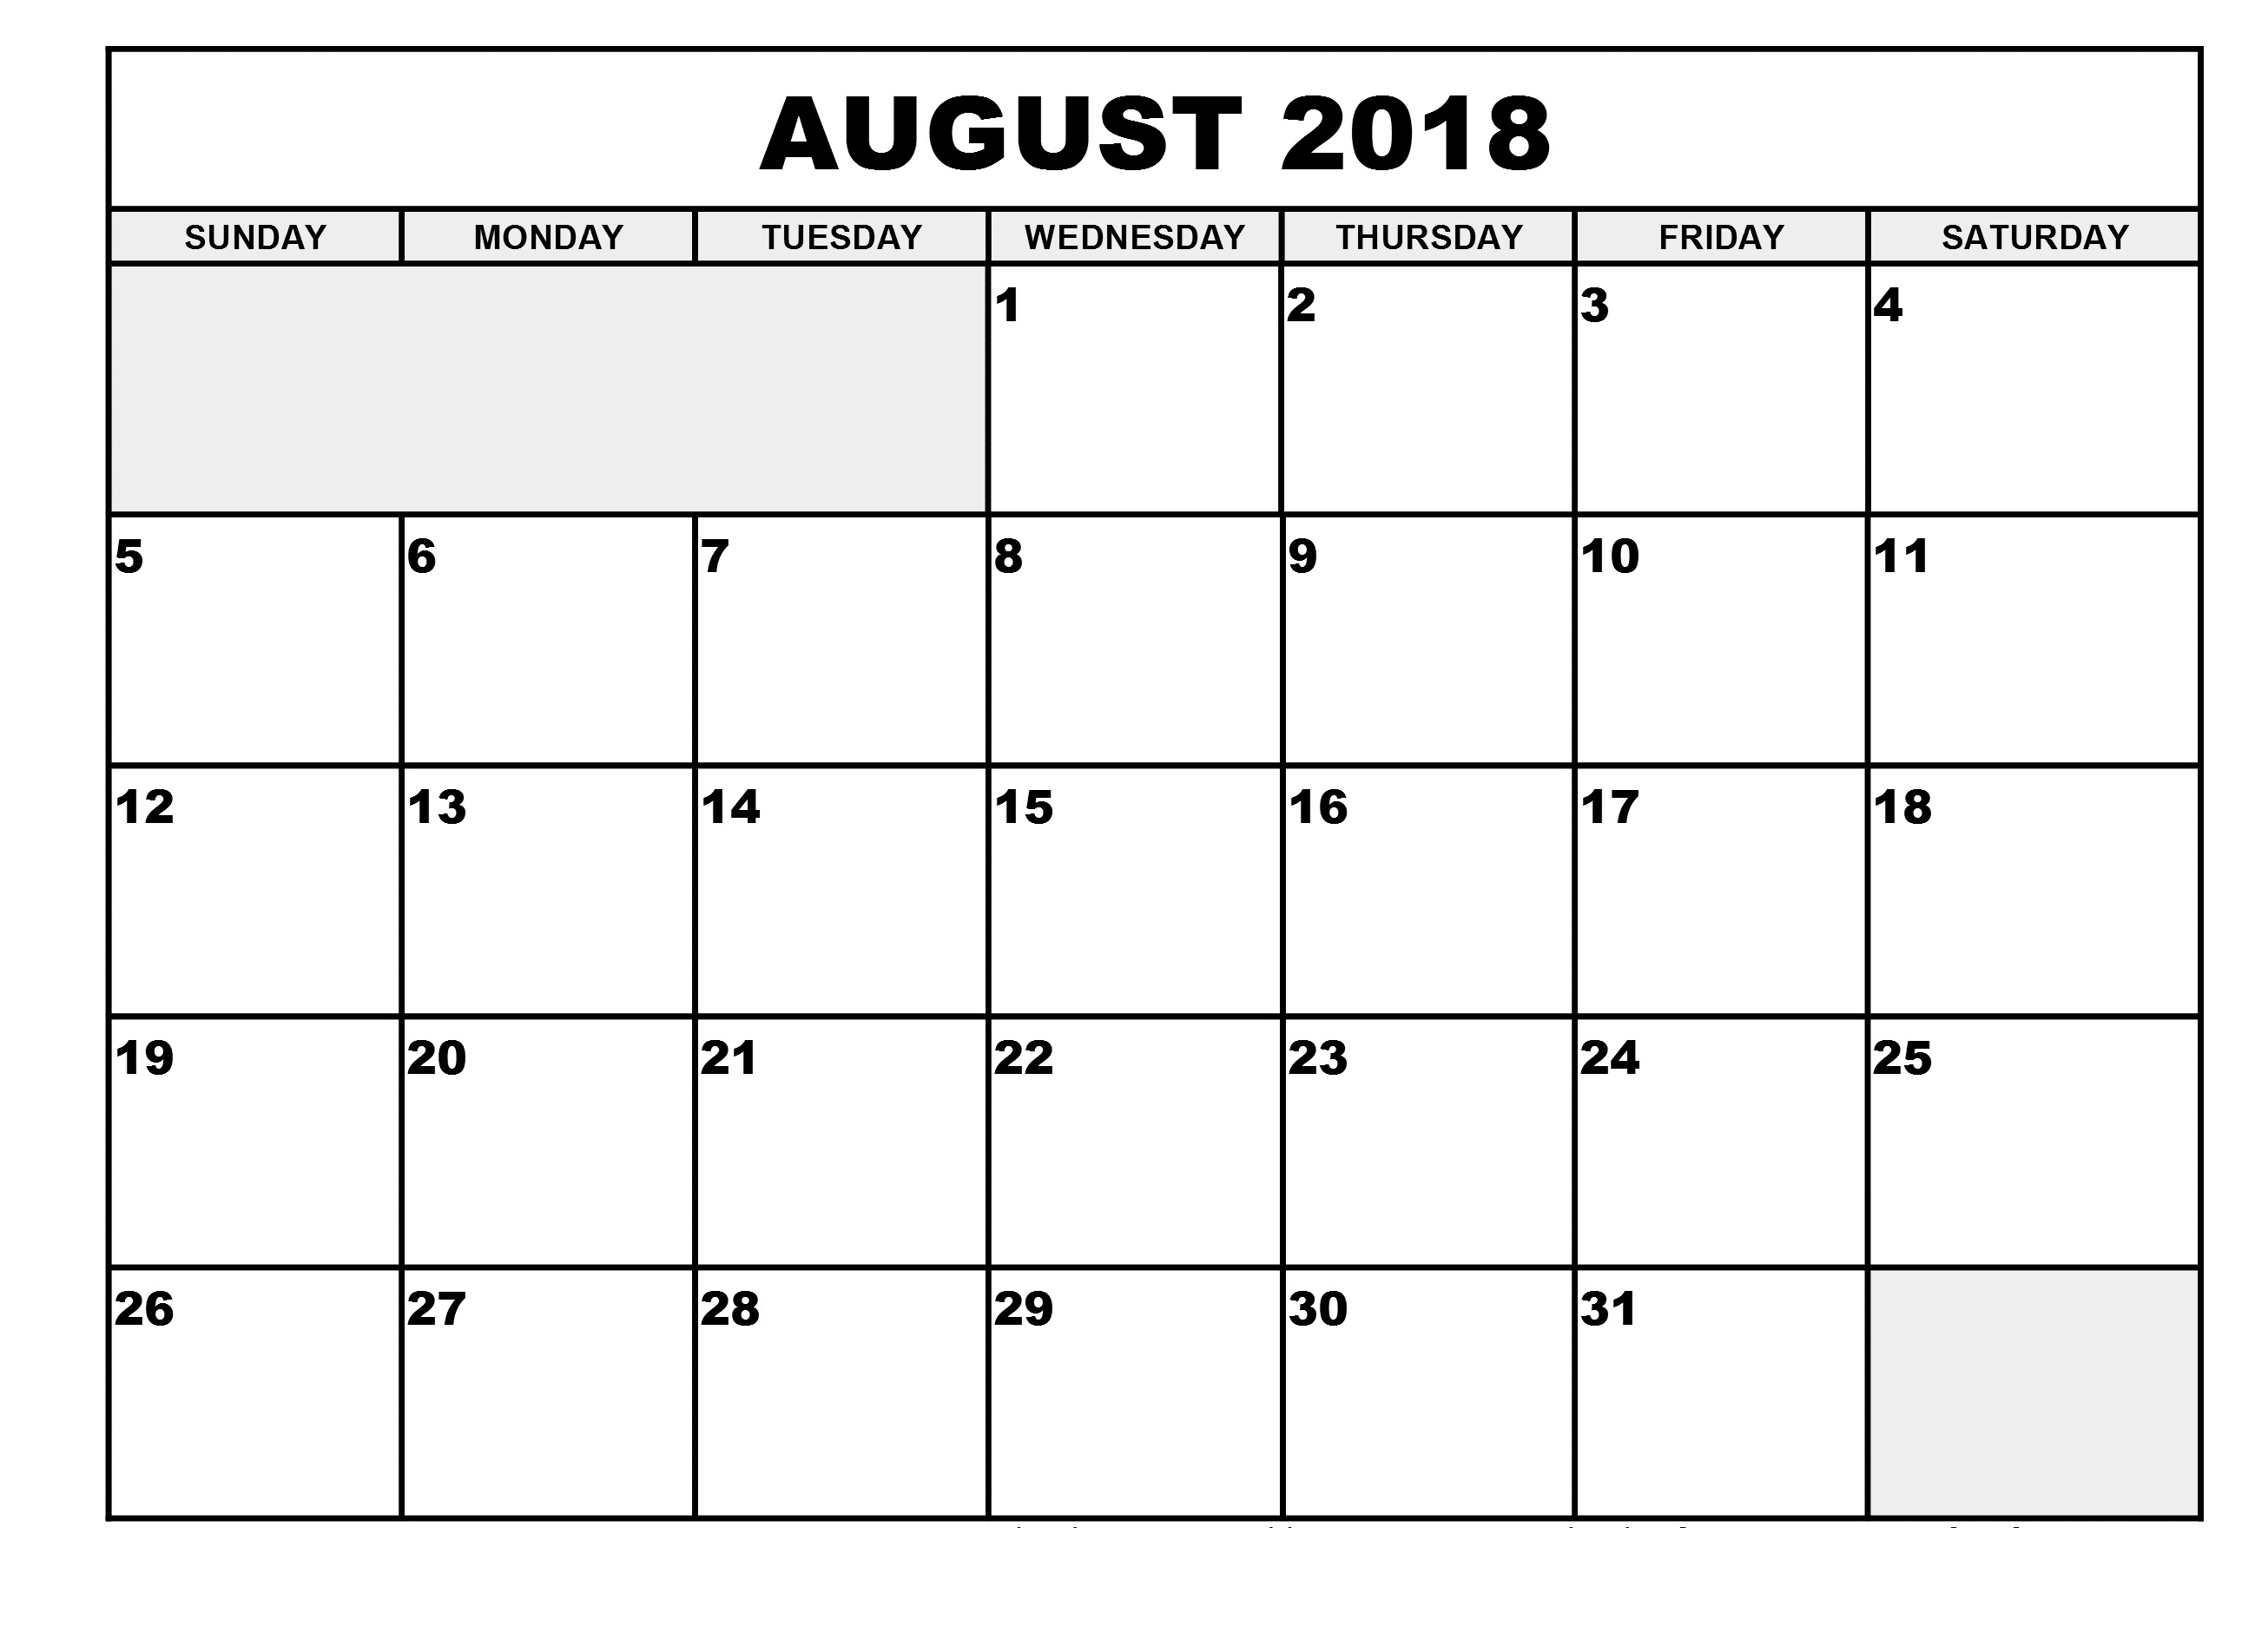 018 Monthly Schedule Template Free Printable Calendar August